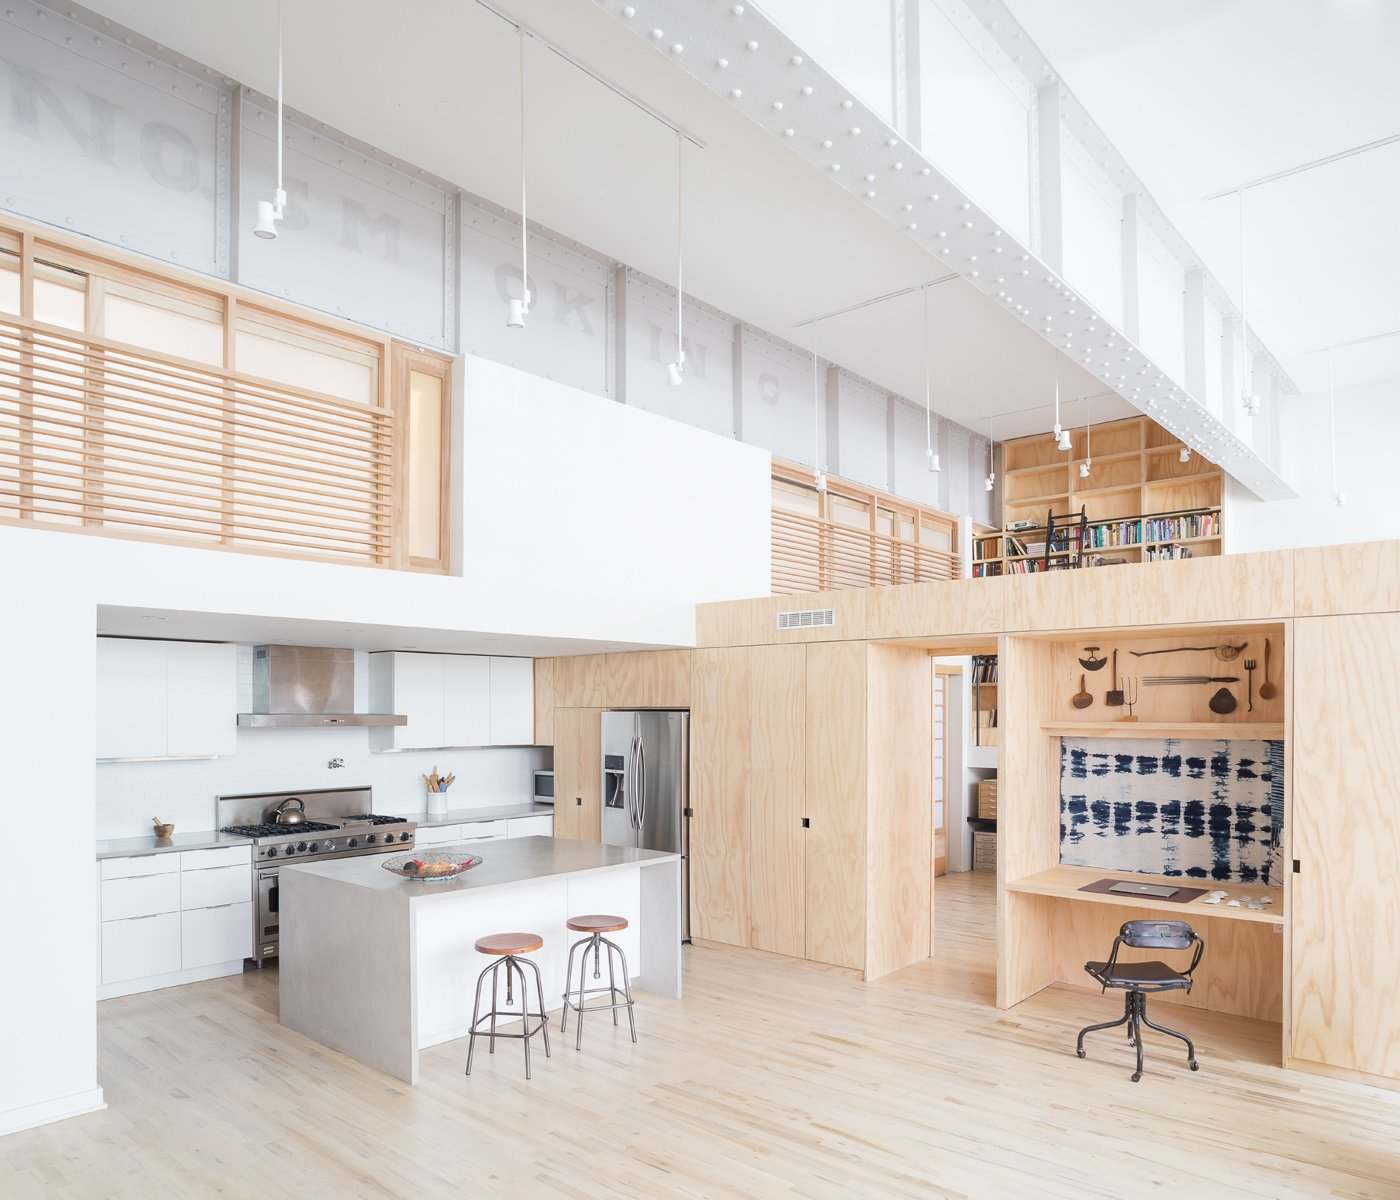 Kitchen and living space looking toward studio and loft bedrooms Tagged: Kitchen, White, Light Hardwood, Concrete, Ceiling, Track, Recessed, Accent, Subway Tile, Refrigerator, Range, and Range Hood.  Best Kitchen White Track Photos from Inspiration